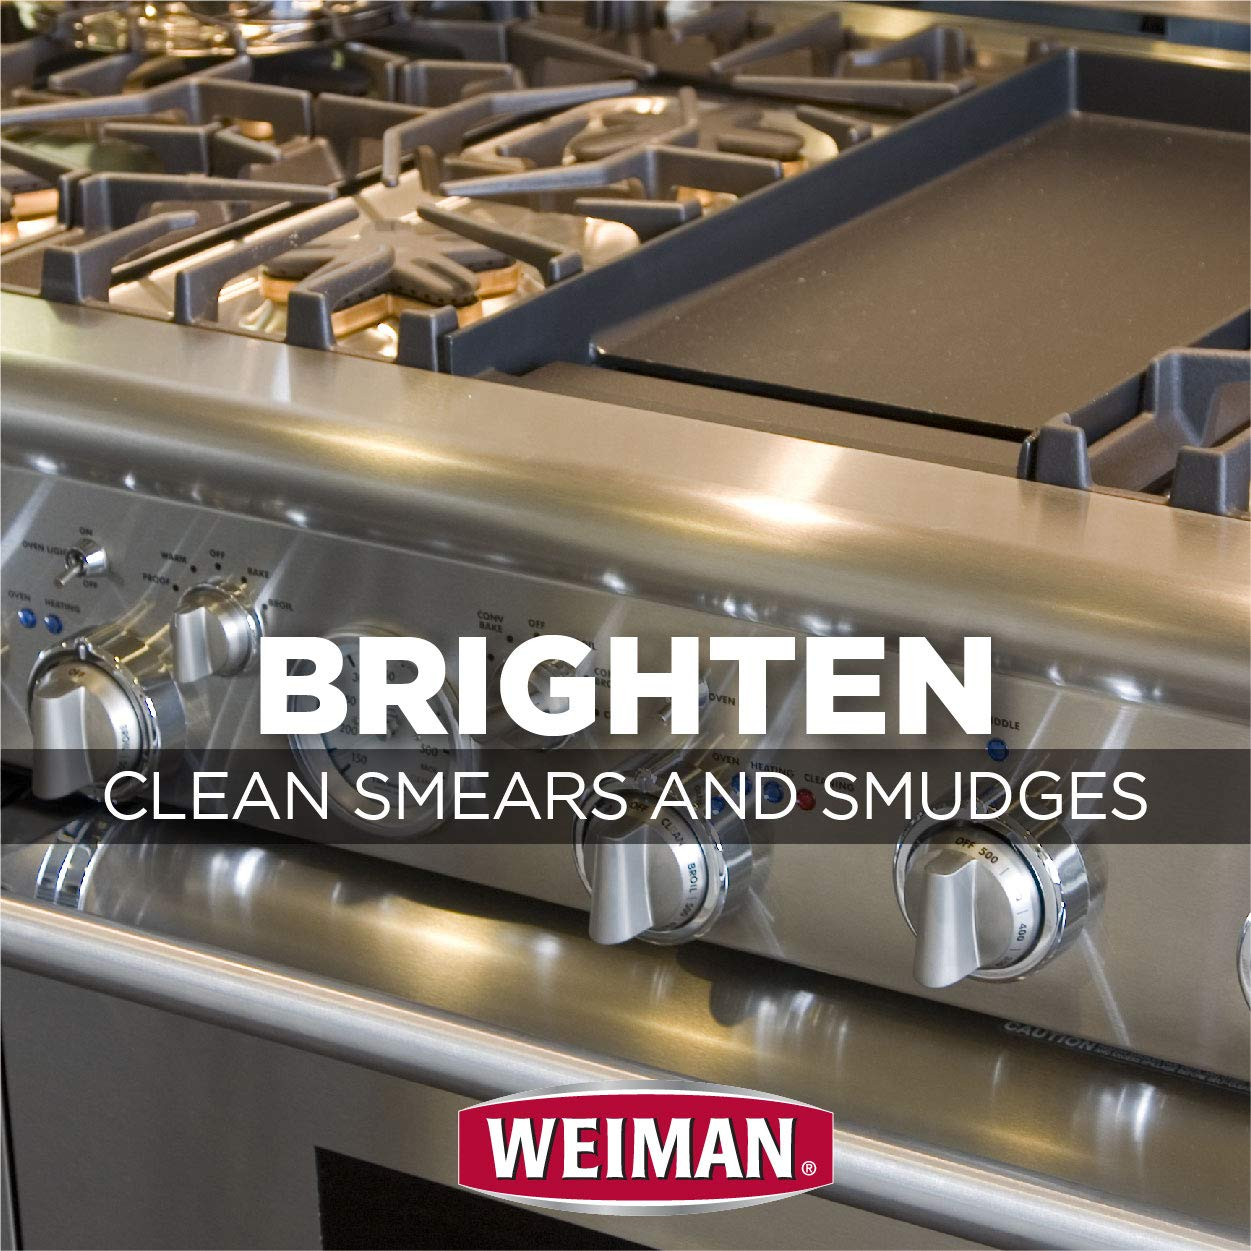 Weiman Stainless Steel Cleaner & Polish 22 fl oz - 6 pack by Weiman (Image #6)